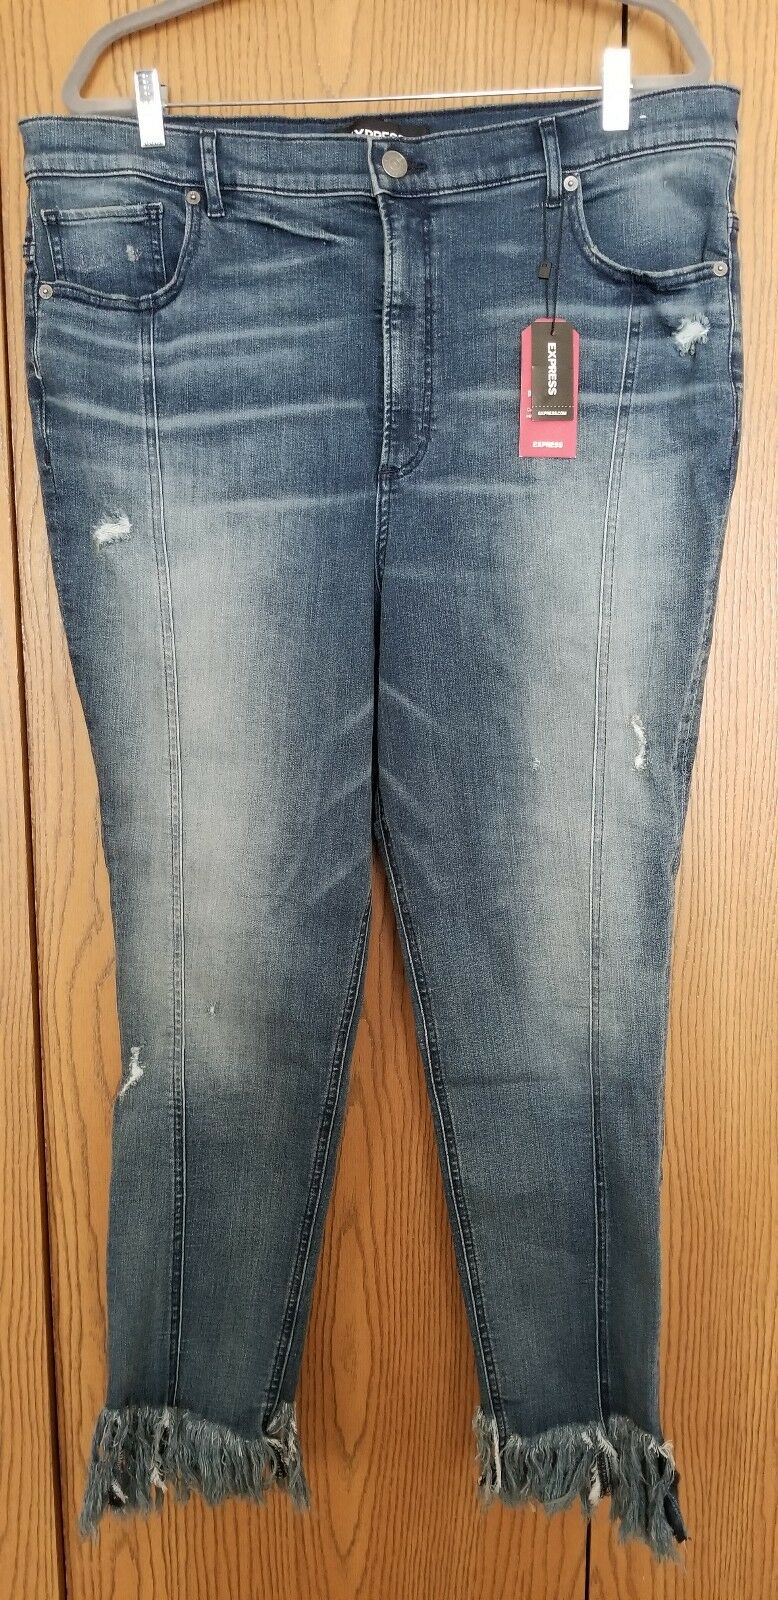 Express Women's Super High Waisted Perfect Stretch+ Ankle Leggings, Sz 18R, NWT